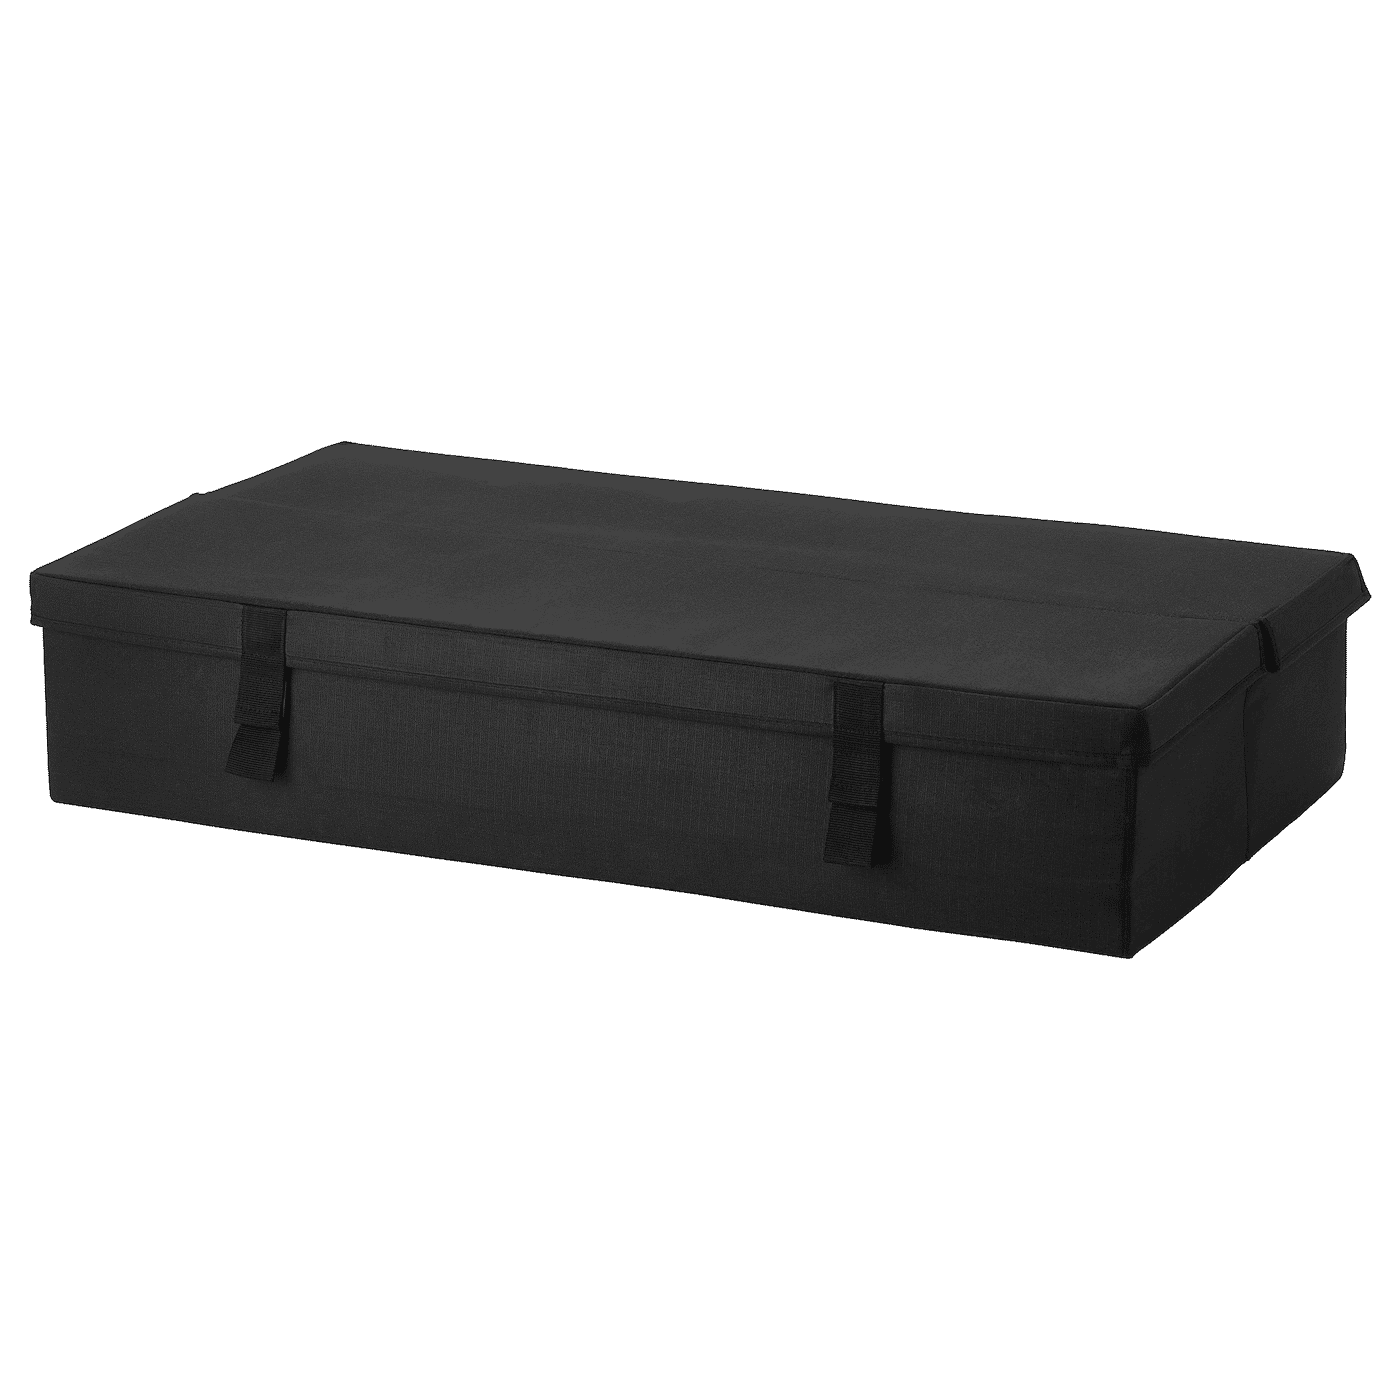 The Lycksele Storage Box 2 Seat Sofa Bed